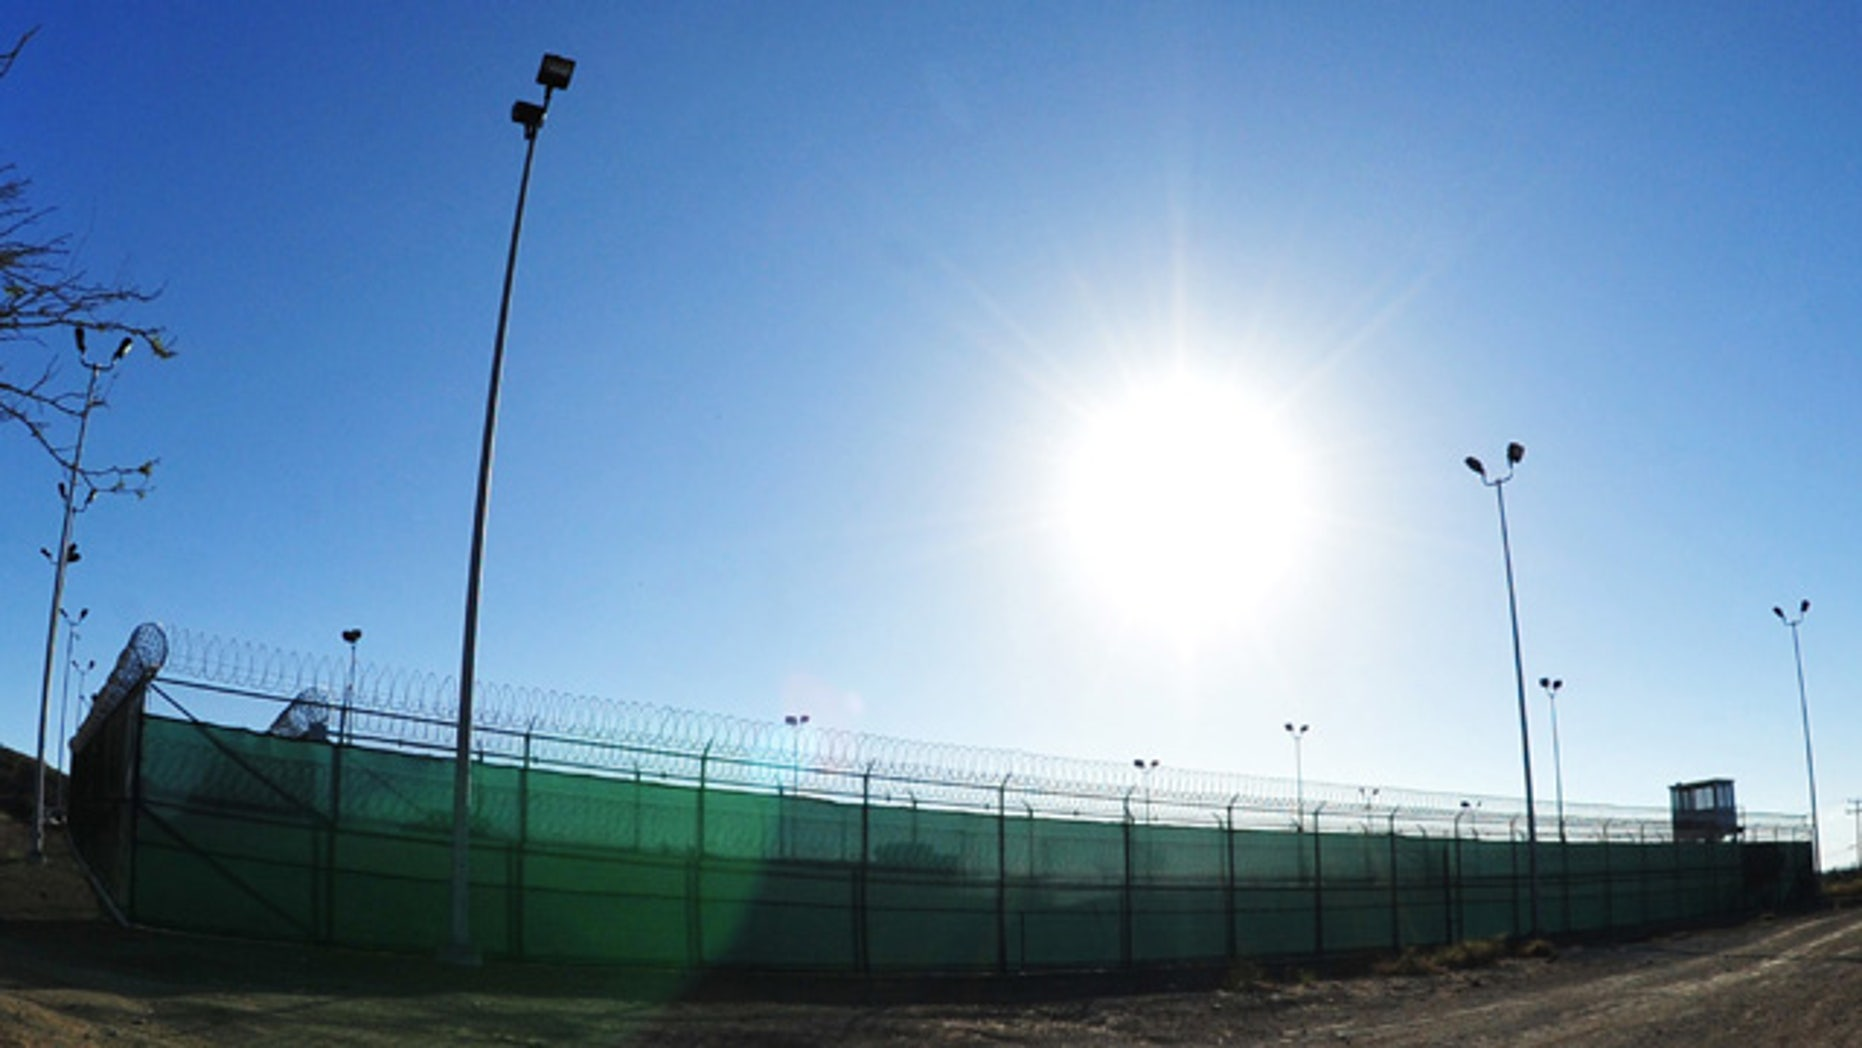 Feb. 28, 2012: A new soccer field for detainees at Camp 6 in Guantanamo Bay